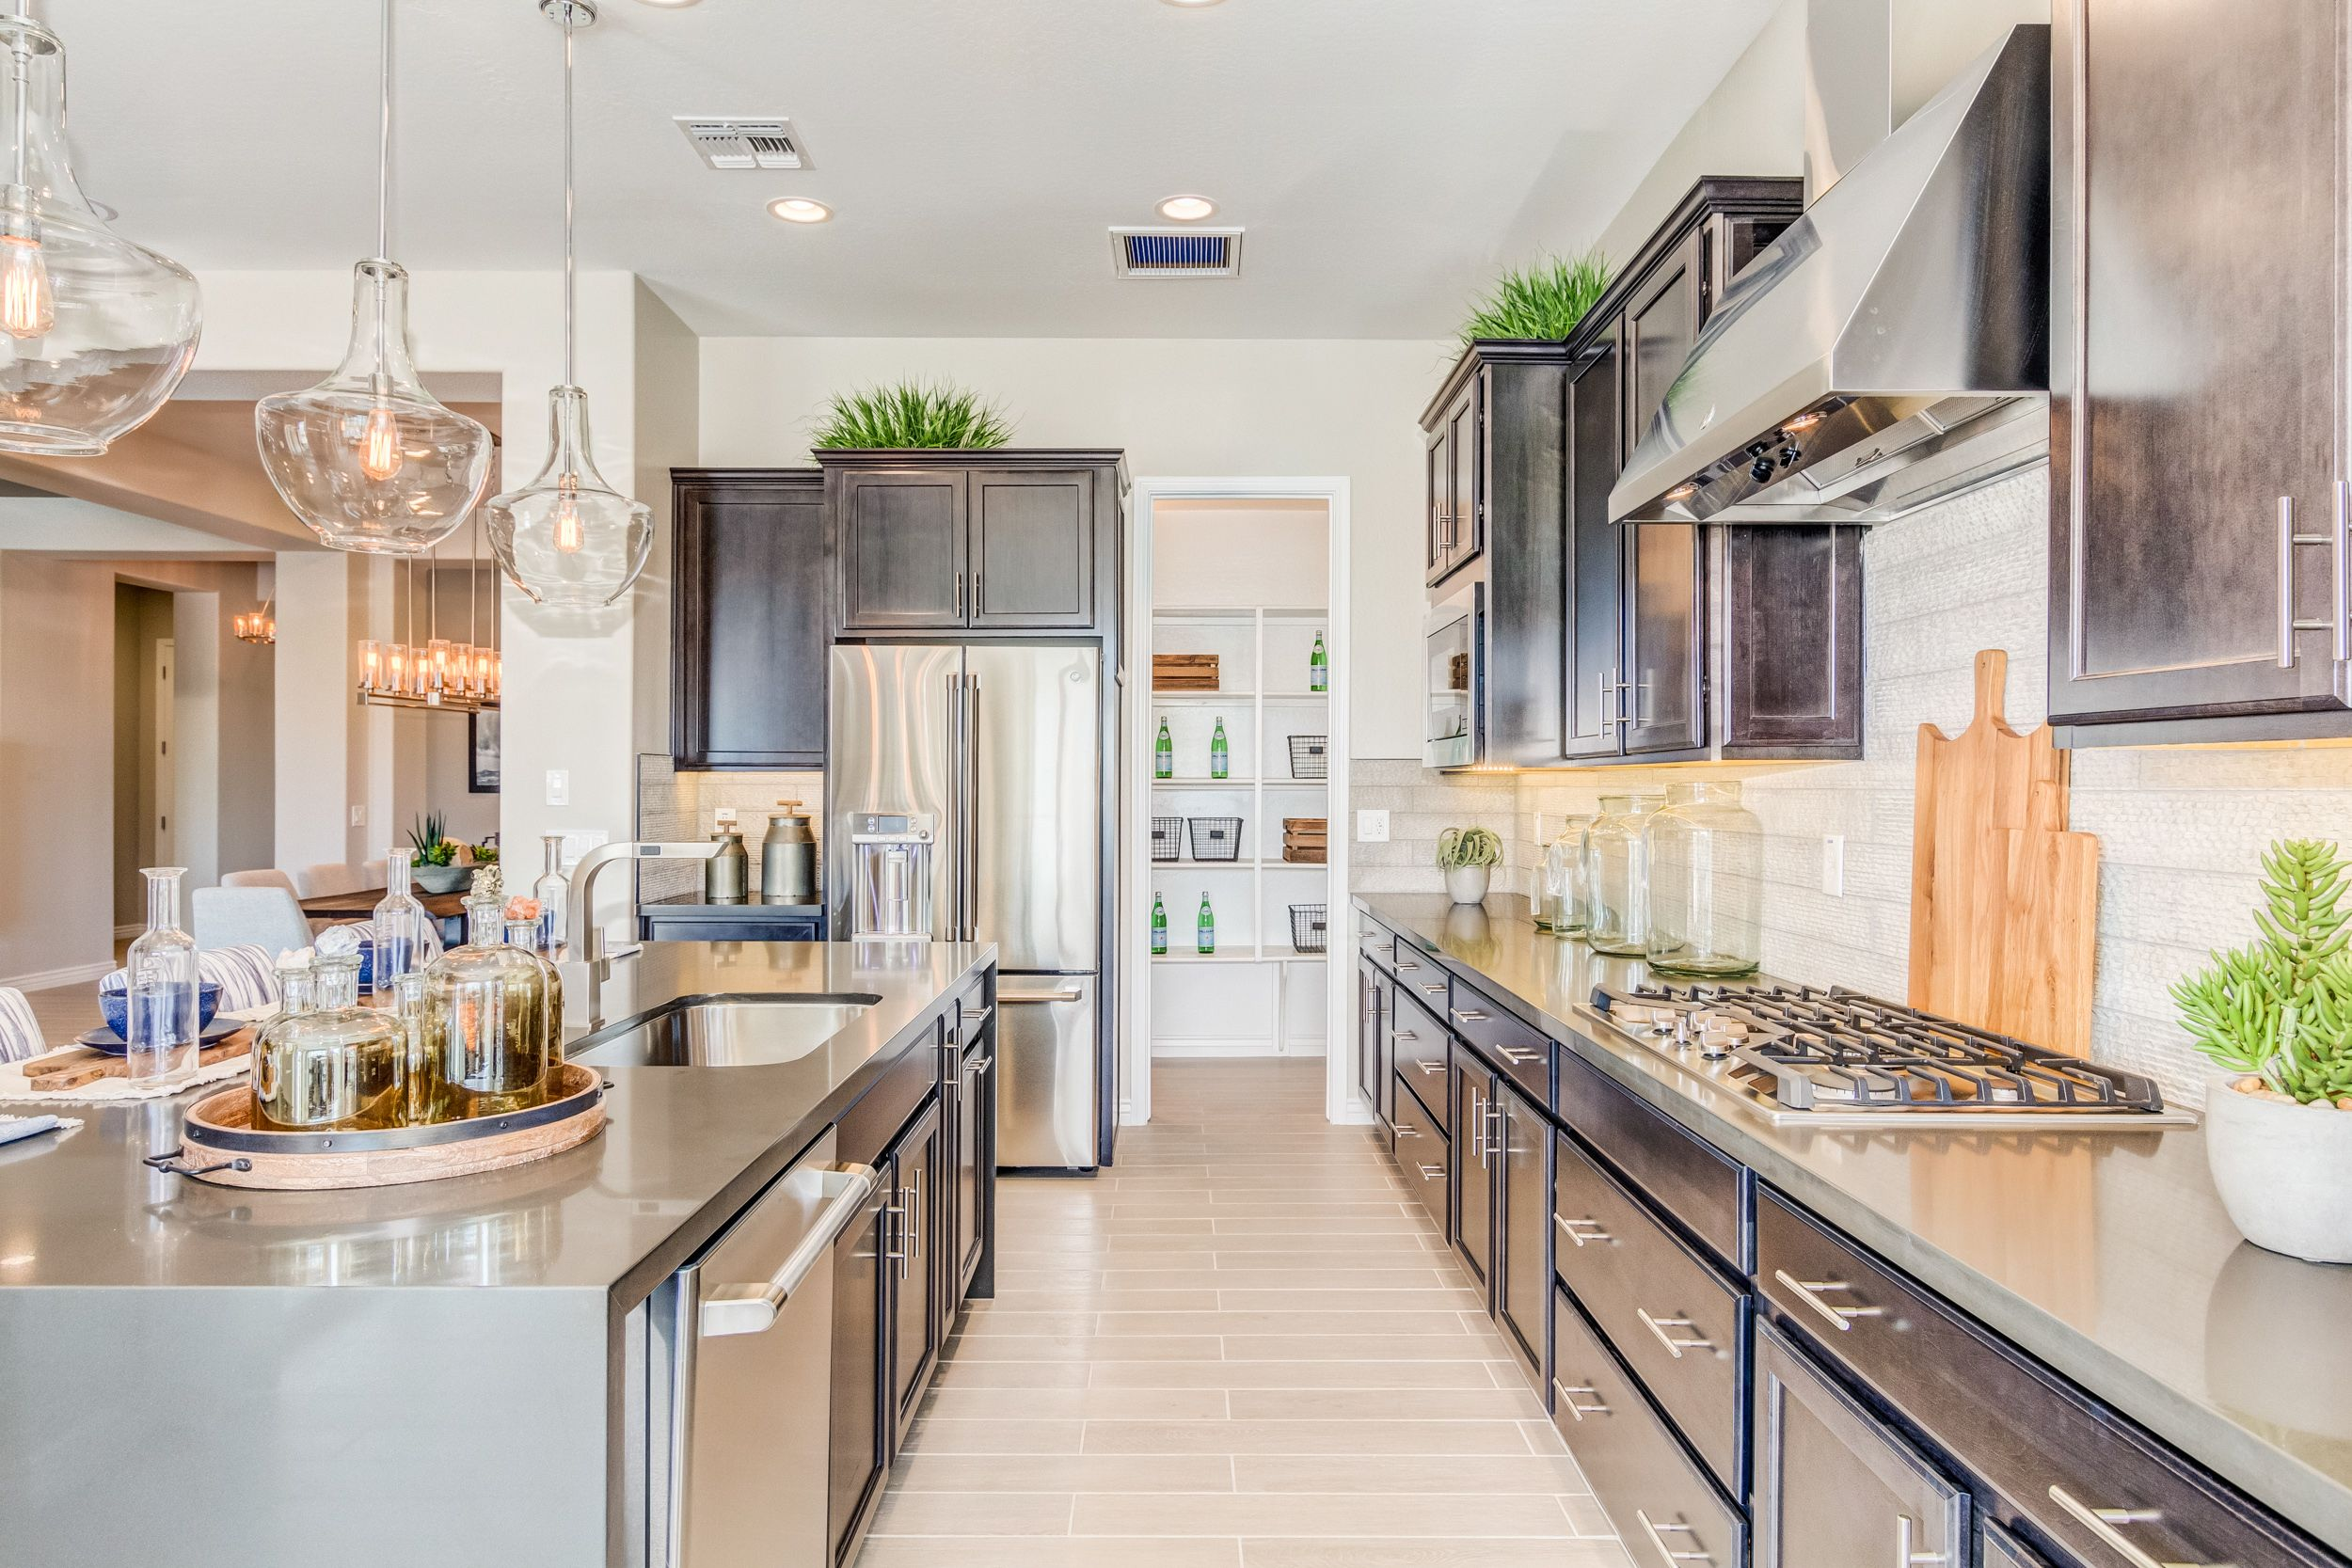 It S Time To Love Where You Live Beautifulhomes Interiordesign Style Phoenixaz Newhome Dark Kitchen Cabinets Garage Prices New Homes